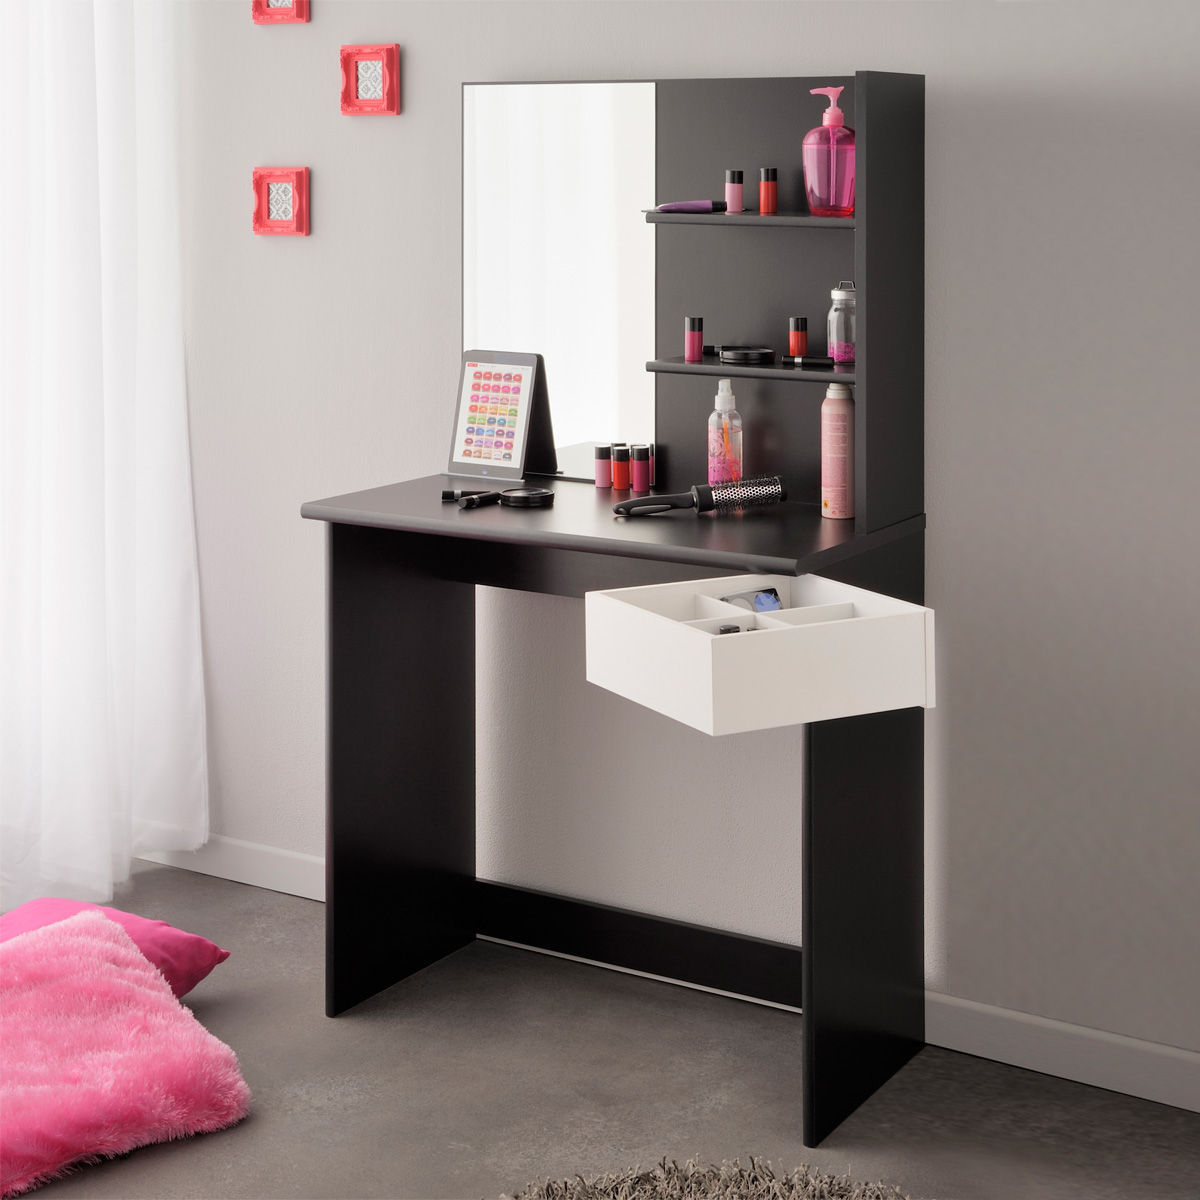 schminktisch pimpante frisierkommode kosmetiktisch in schwarz und wei eur 109 05 picclick de. Black Bedroom Furniture Sets. Home Design Ideas